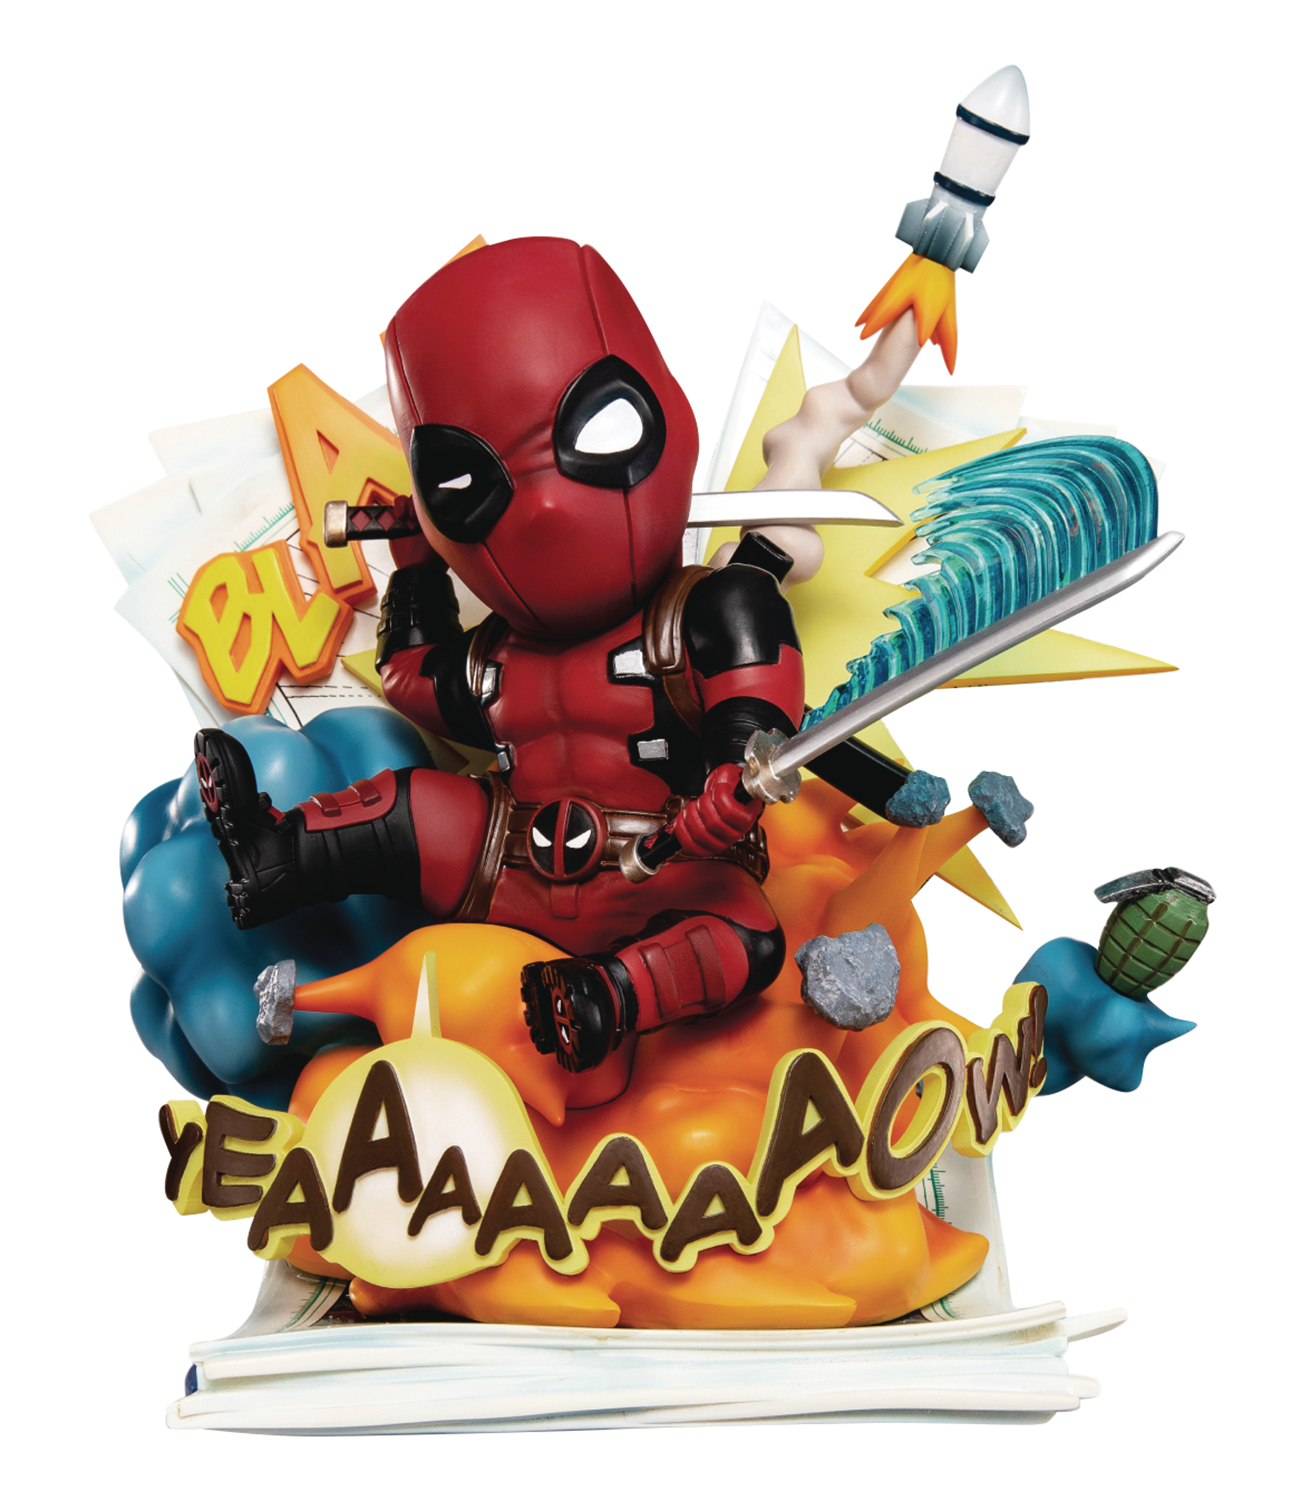 MARVEL EA-039 DEADPOOL CUT OFF THE FOURTH WALL PX STATUE